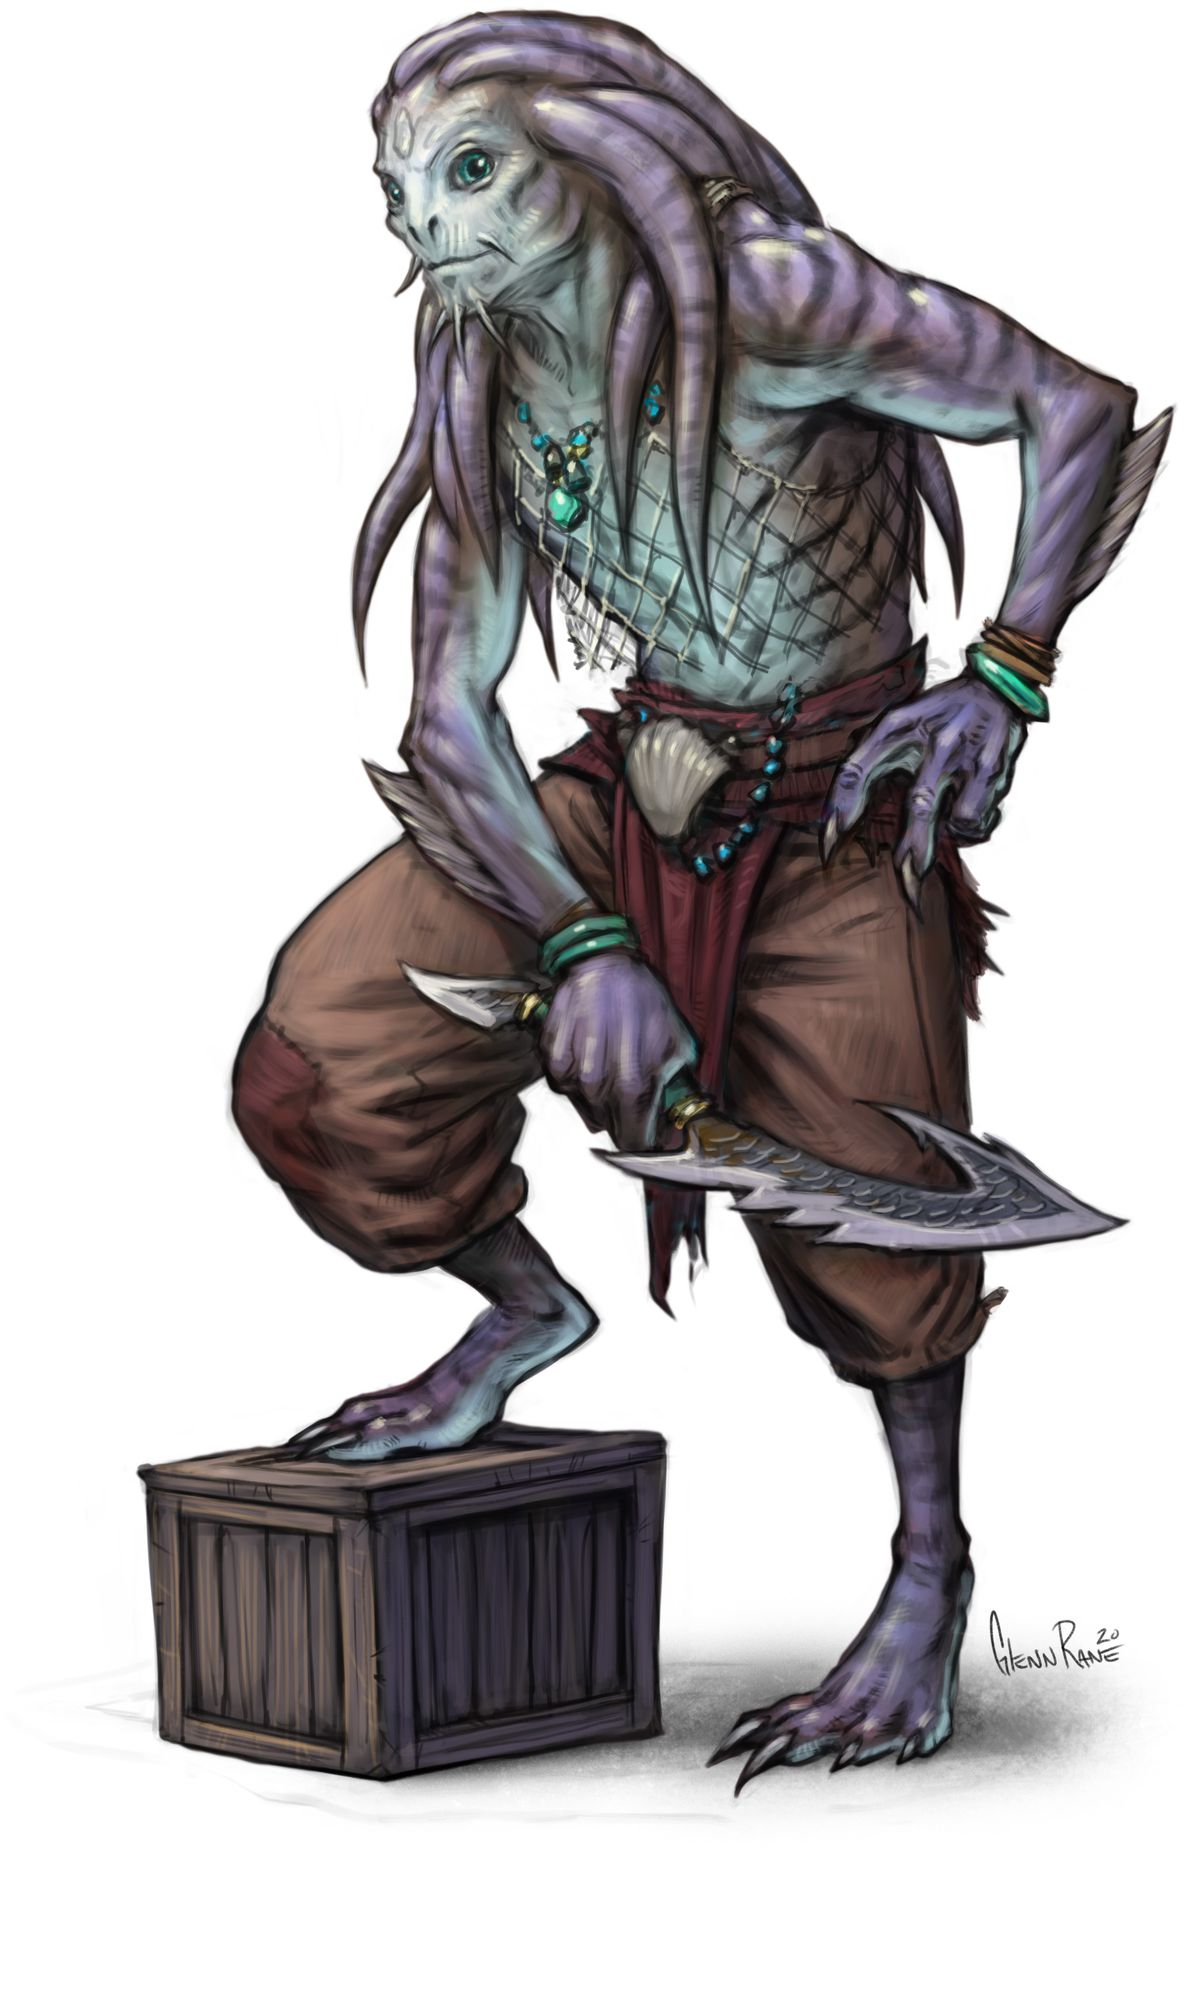 A scaly man with tentacles for hair stands in battered parachute pants on a crate.